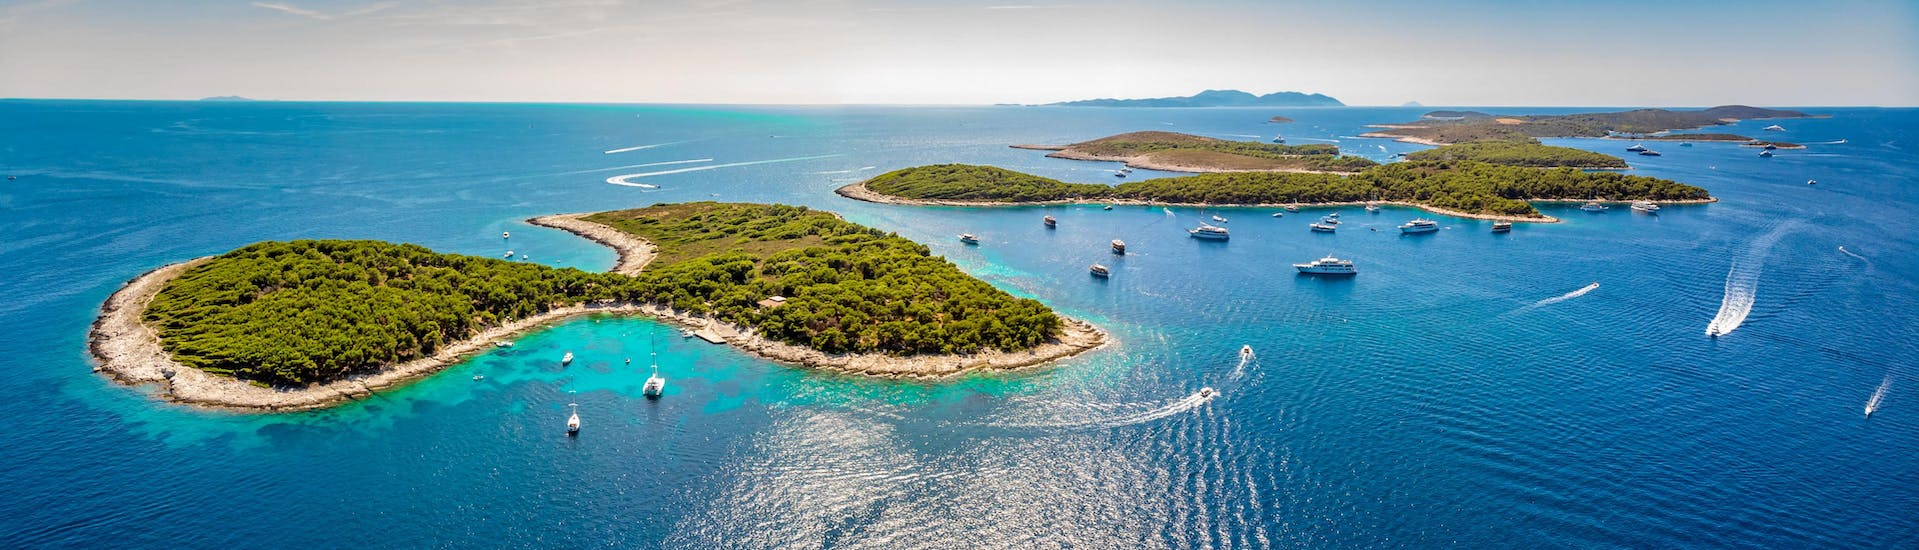 Boat trips from Hvar Island are very popular.